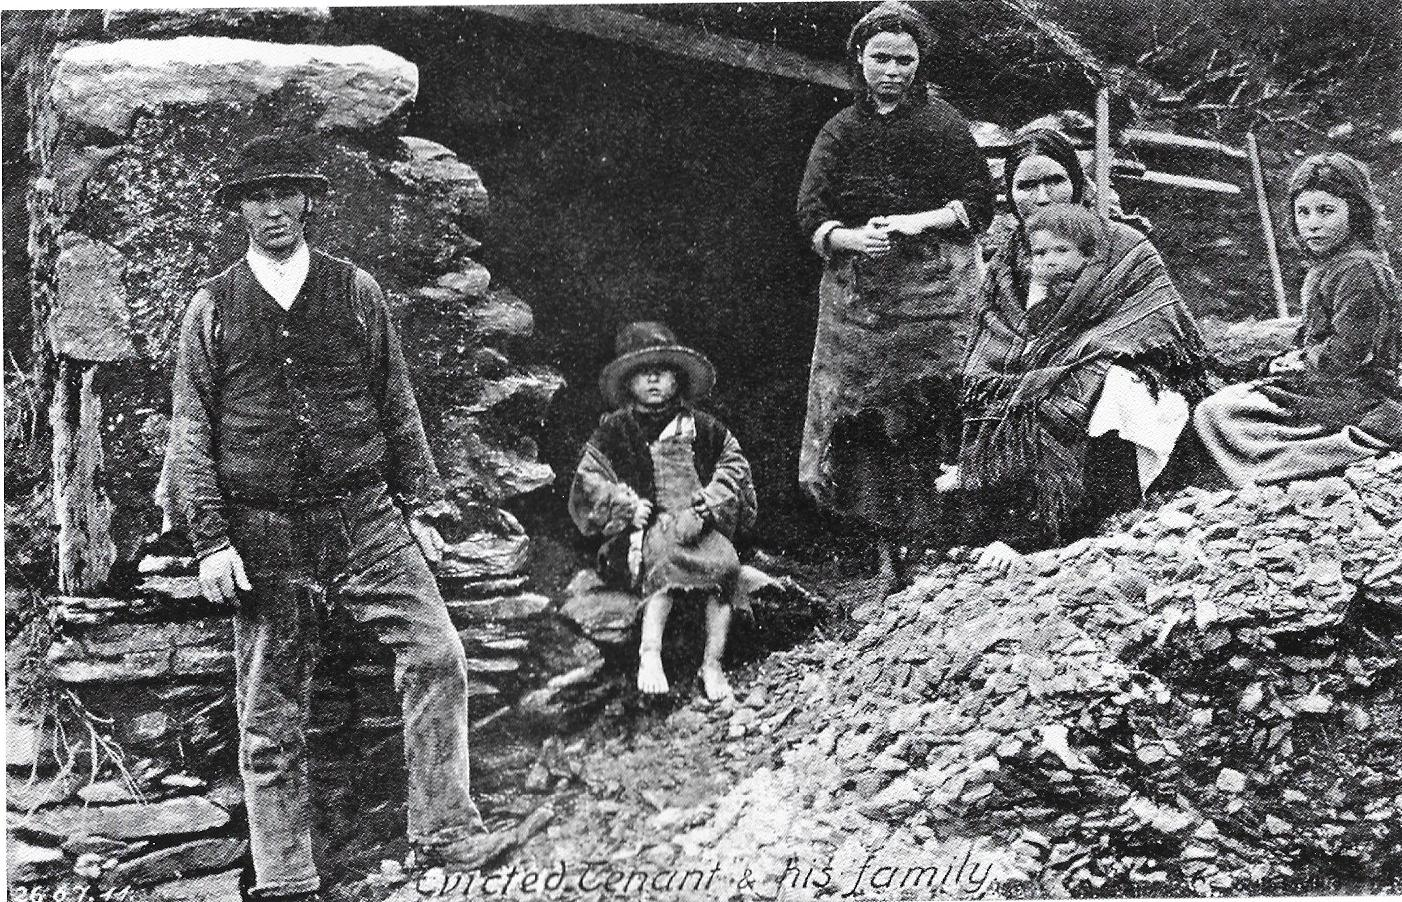 A typical post - Irish potato famine eviction scene in rural areas in the 1850's.  After the worst of the famine had passed, it was common to see families camped out in the ruins of their house. Between 1849-1854,250,000 - 500,000 mainly rural people, were forced from their homes usually for rent arrears. The fortunate emigrated to America or elsewhere and the less fortunate the 'workhouse'.